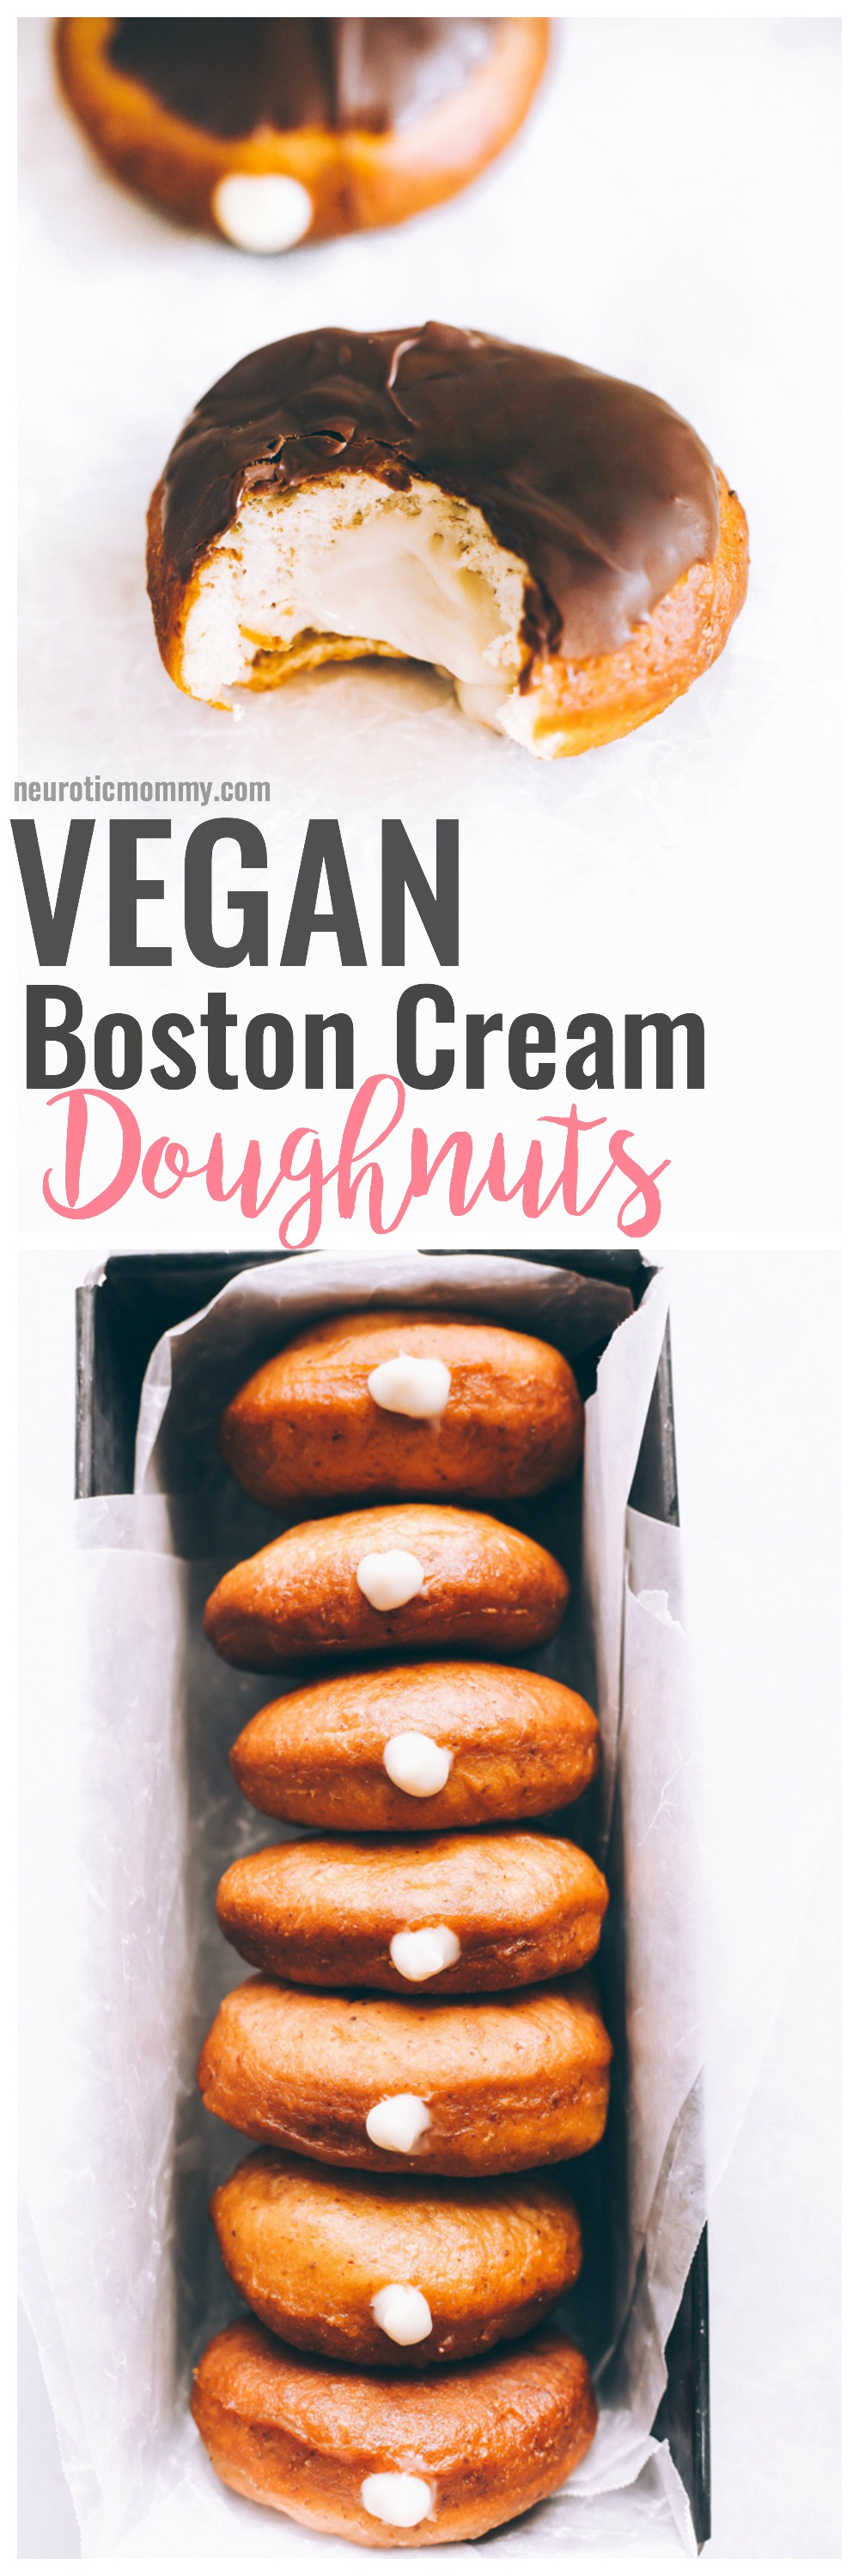 Vegan Boston Cream Doughnuts